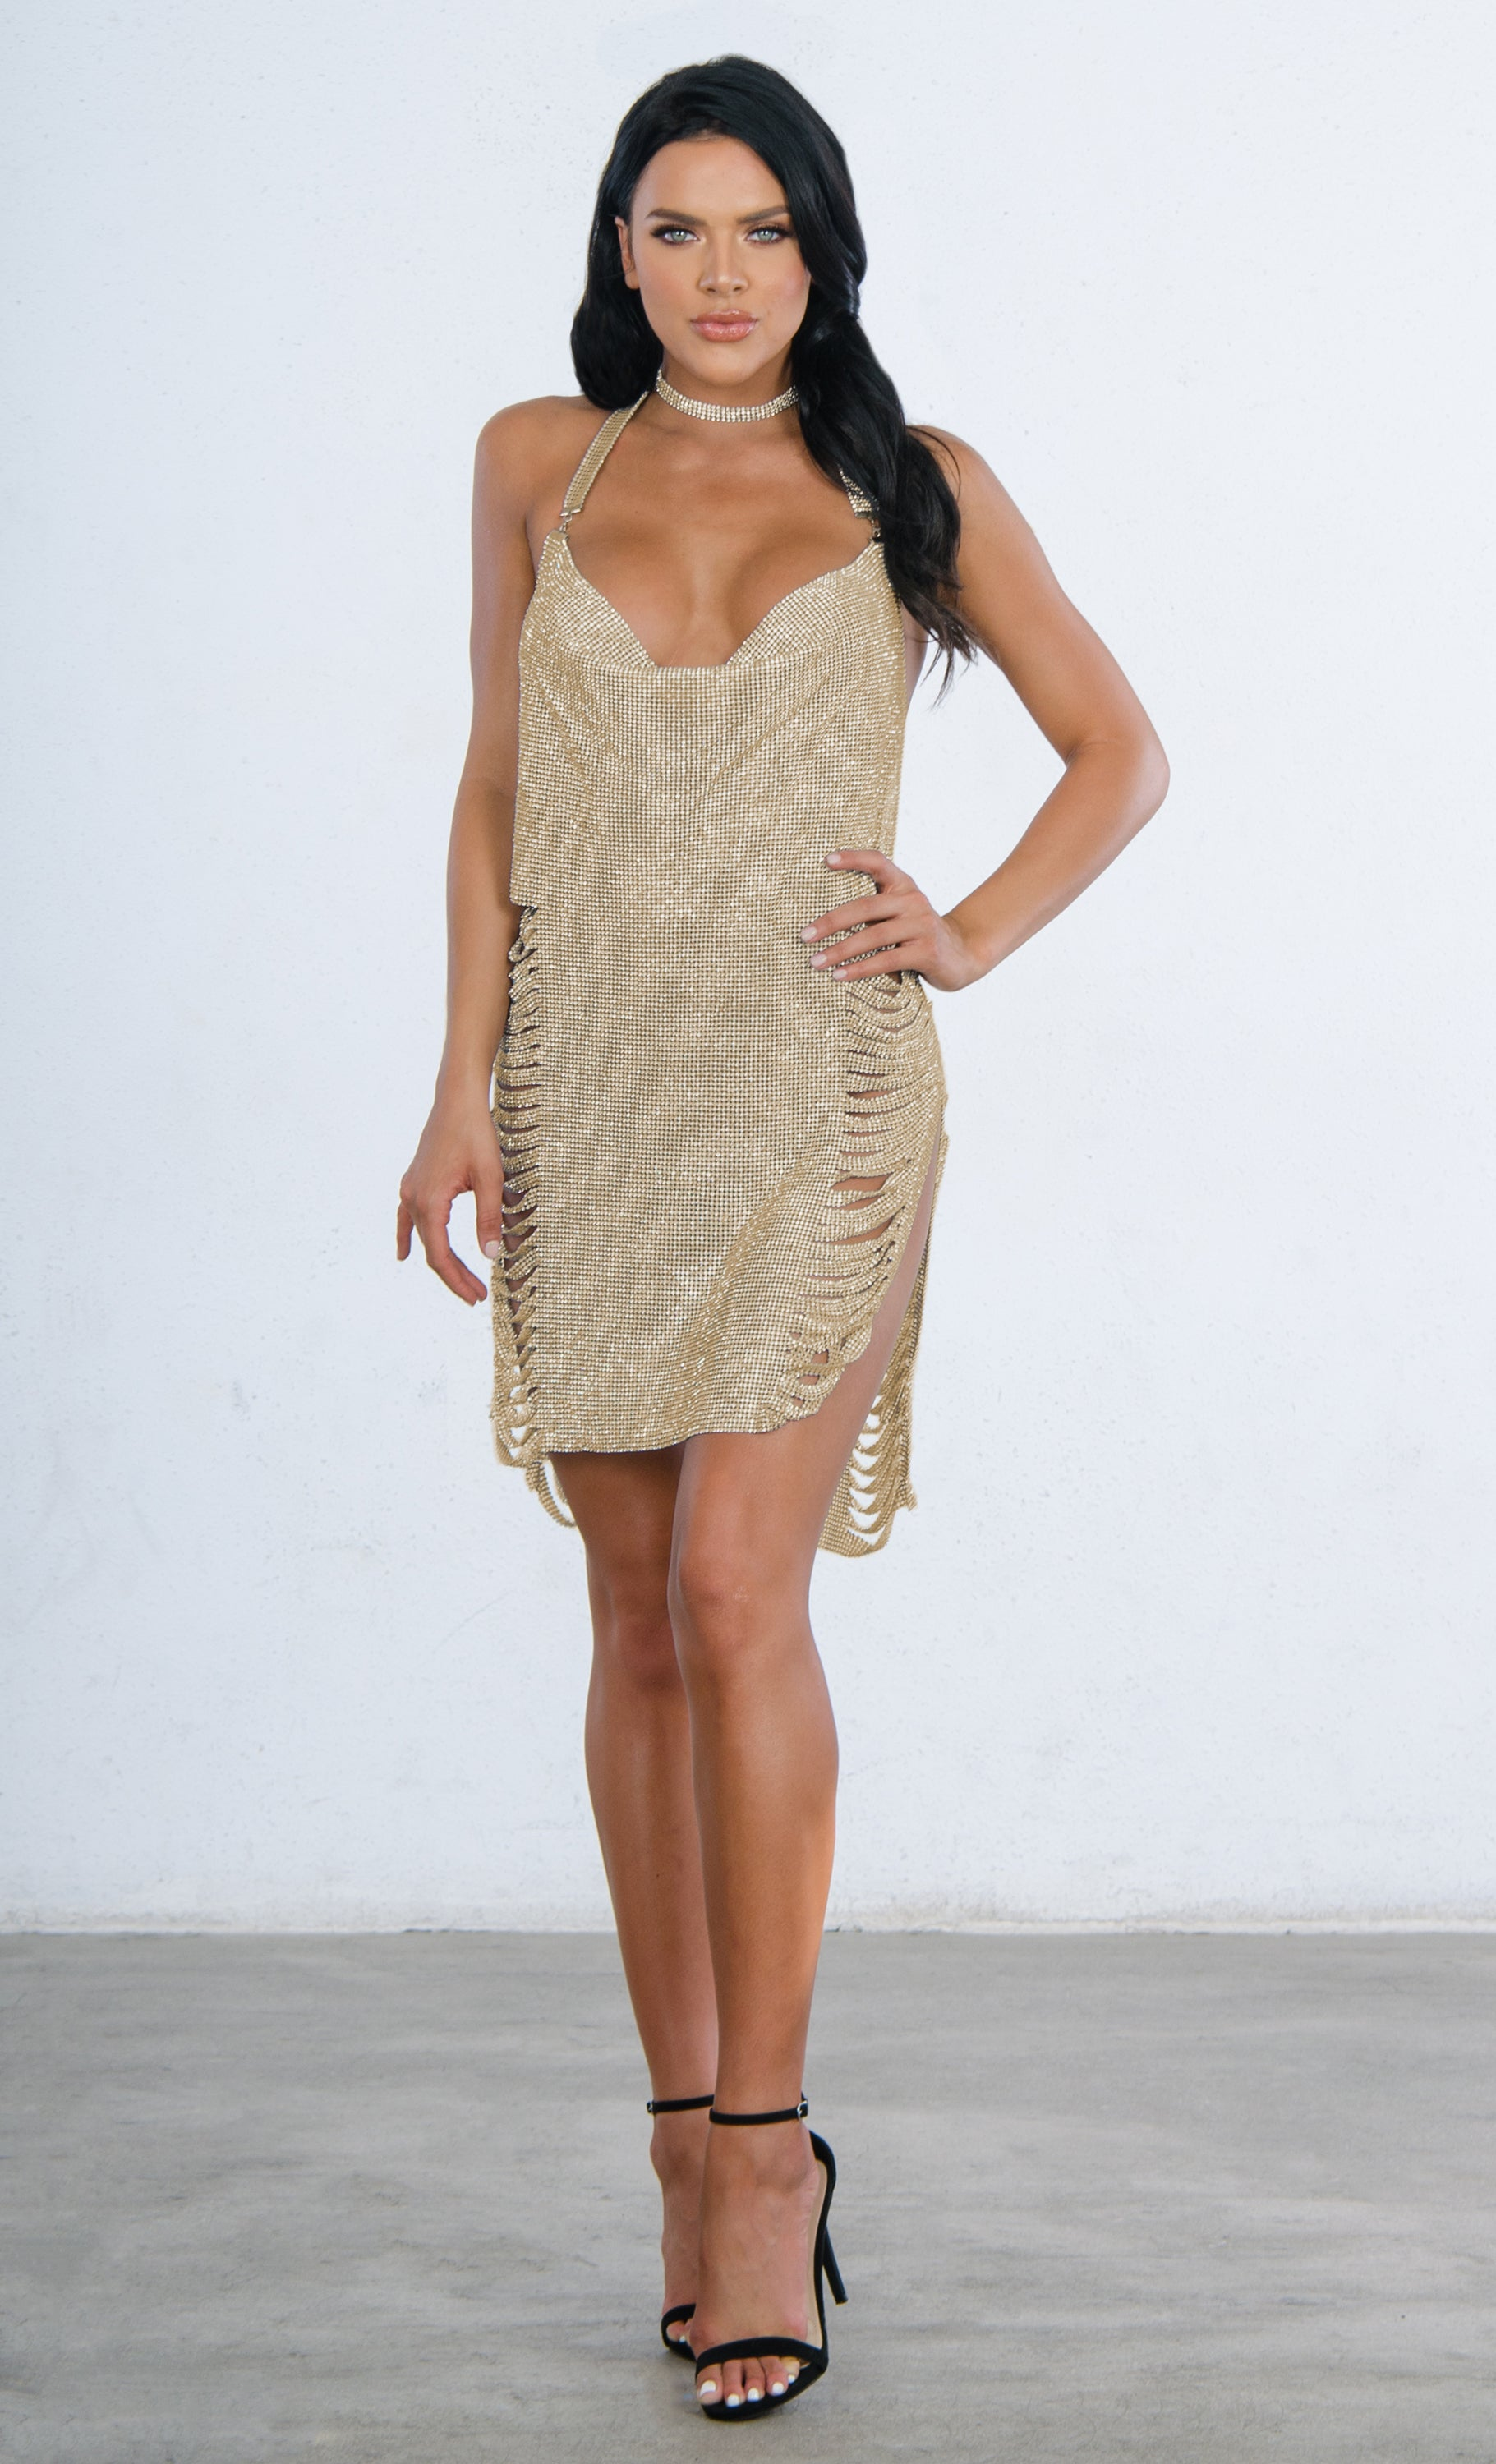 Indie XO Feel It Still Metallic Gold Rhinestone Shredded Diamanté Mesh Sleeveless Backless Halter V Neck Side Slit Mini Dress - 2 Colors Available